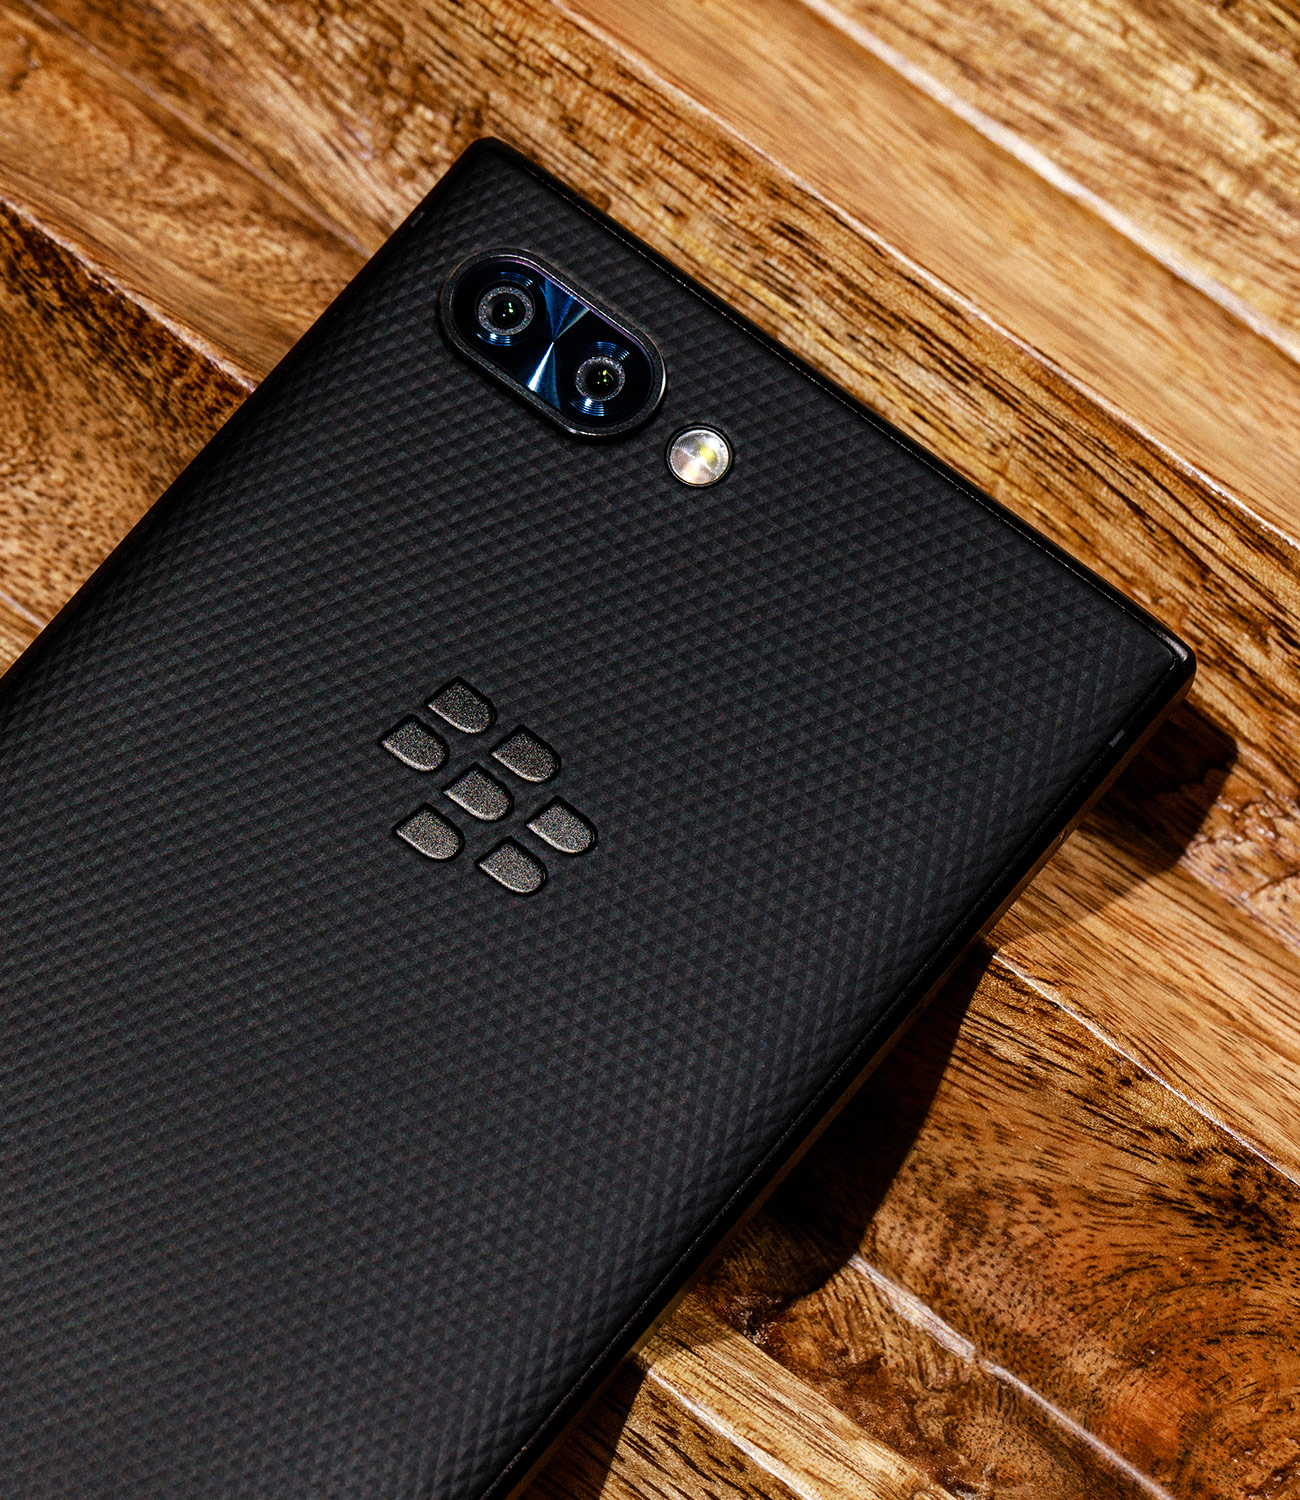 Review: Should You Buy a BlackBerry in 2018?